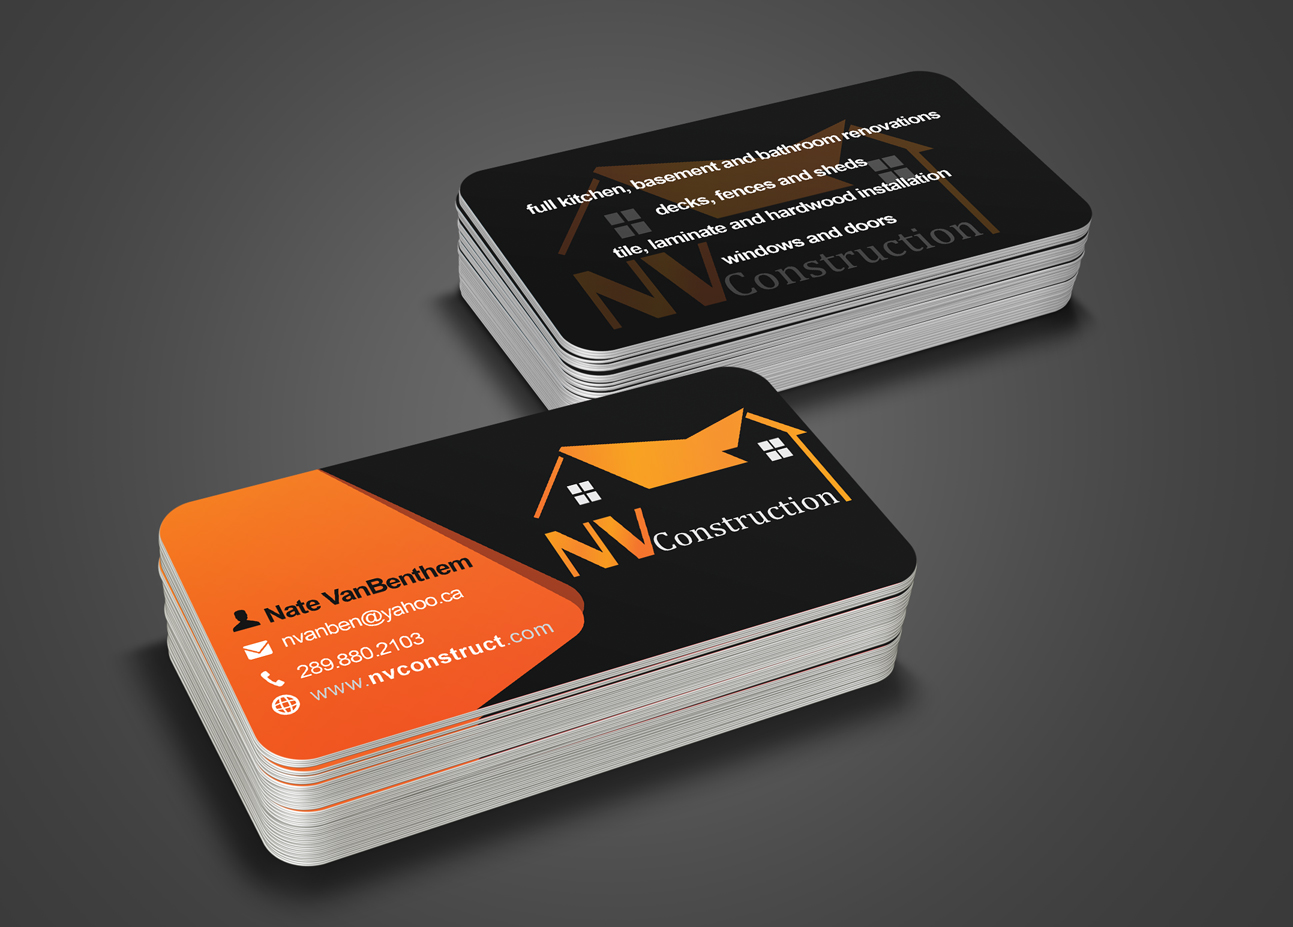 Business card logo business card tips business card logo colourmoves